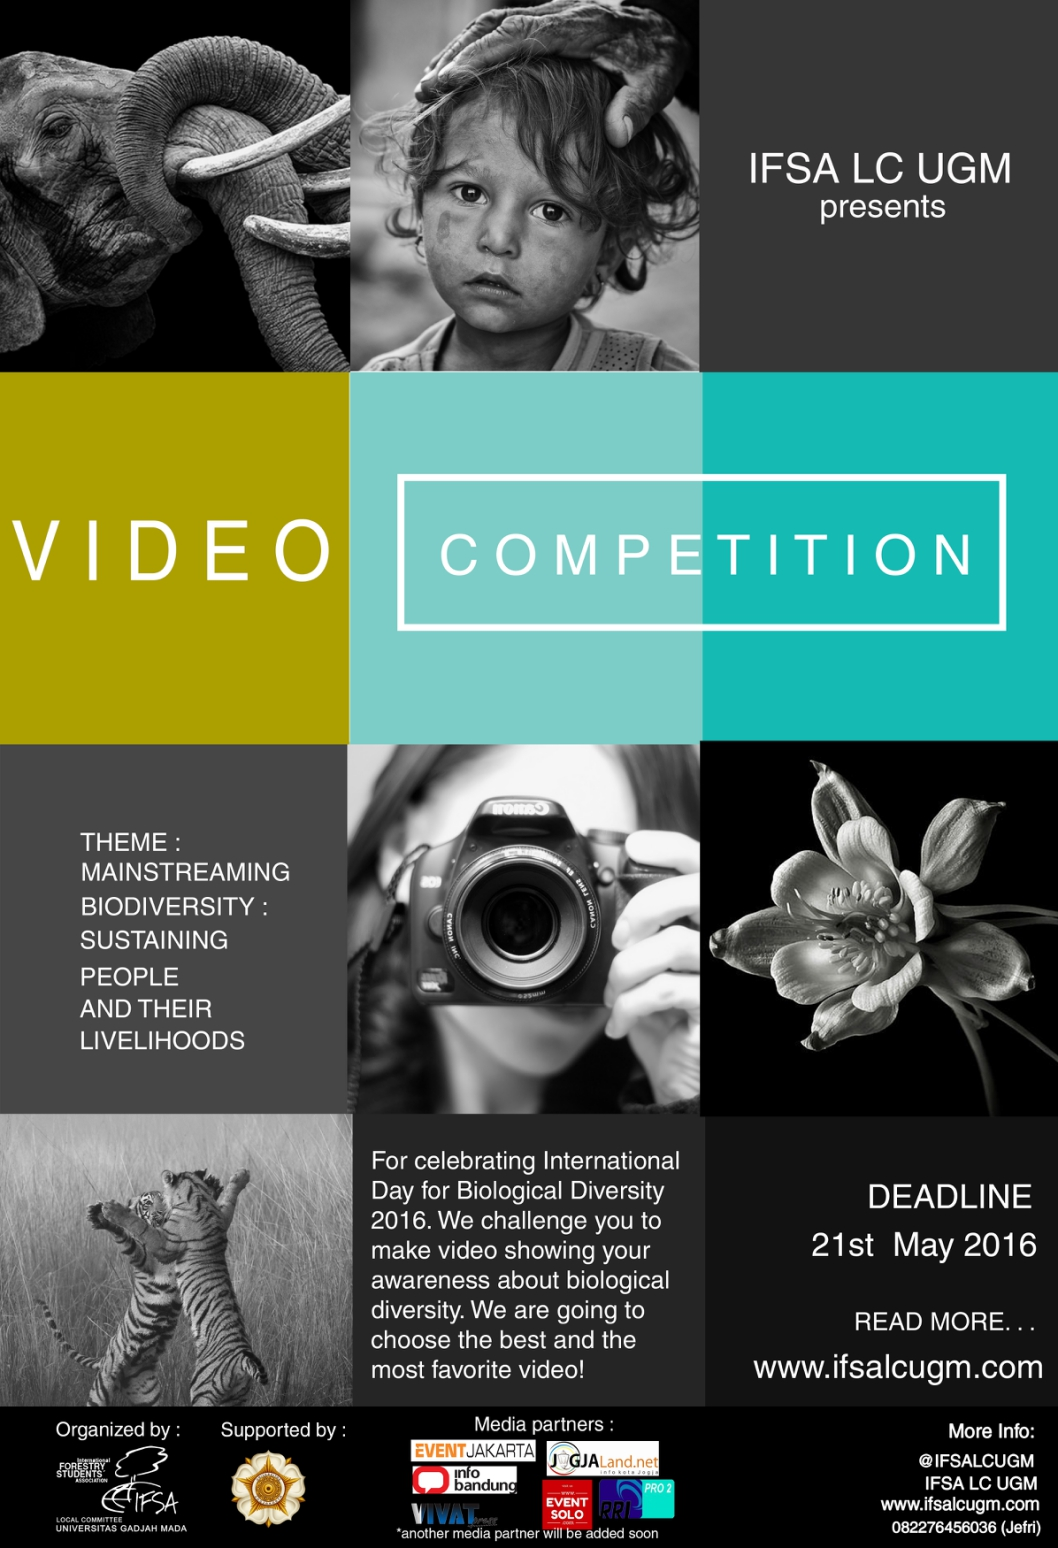 Permalink to International Day for Biological Diversity Video Competition